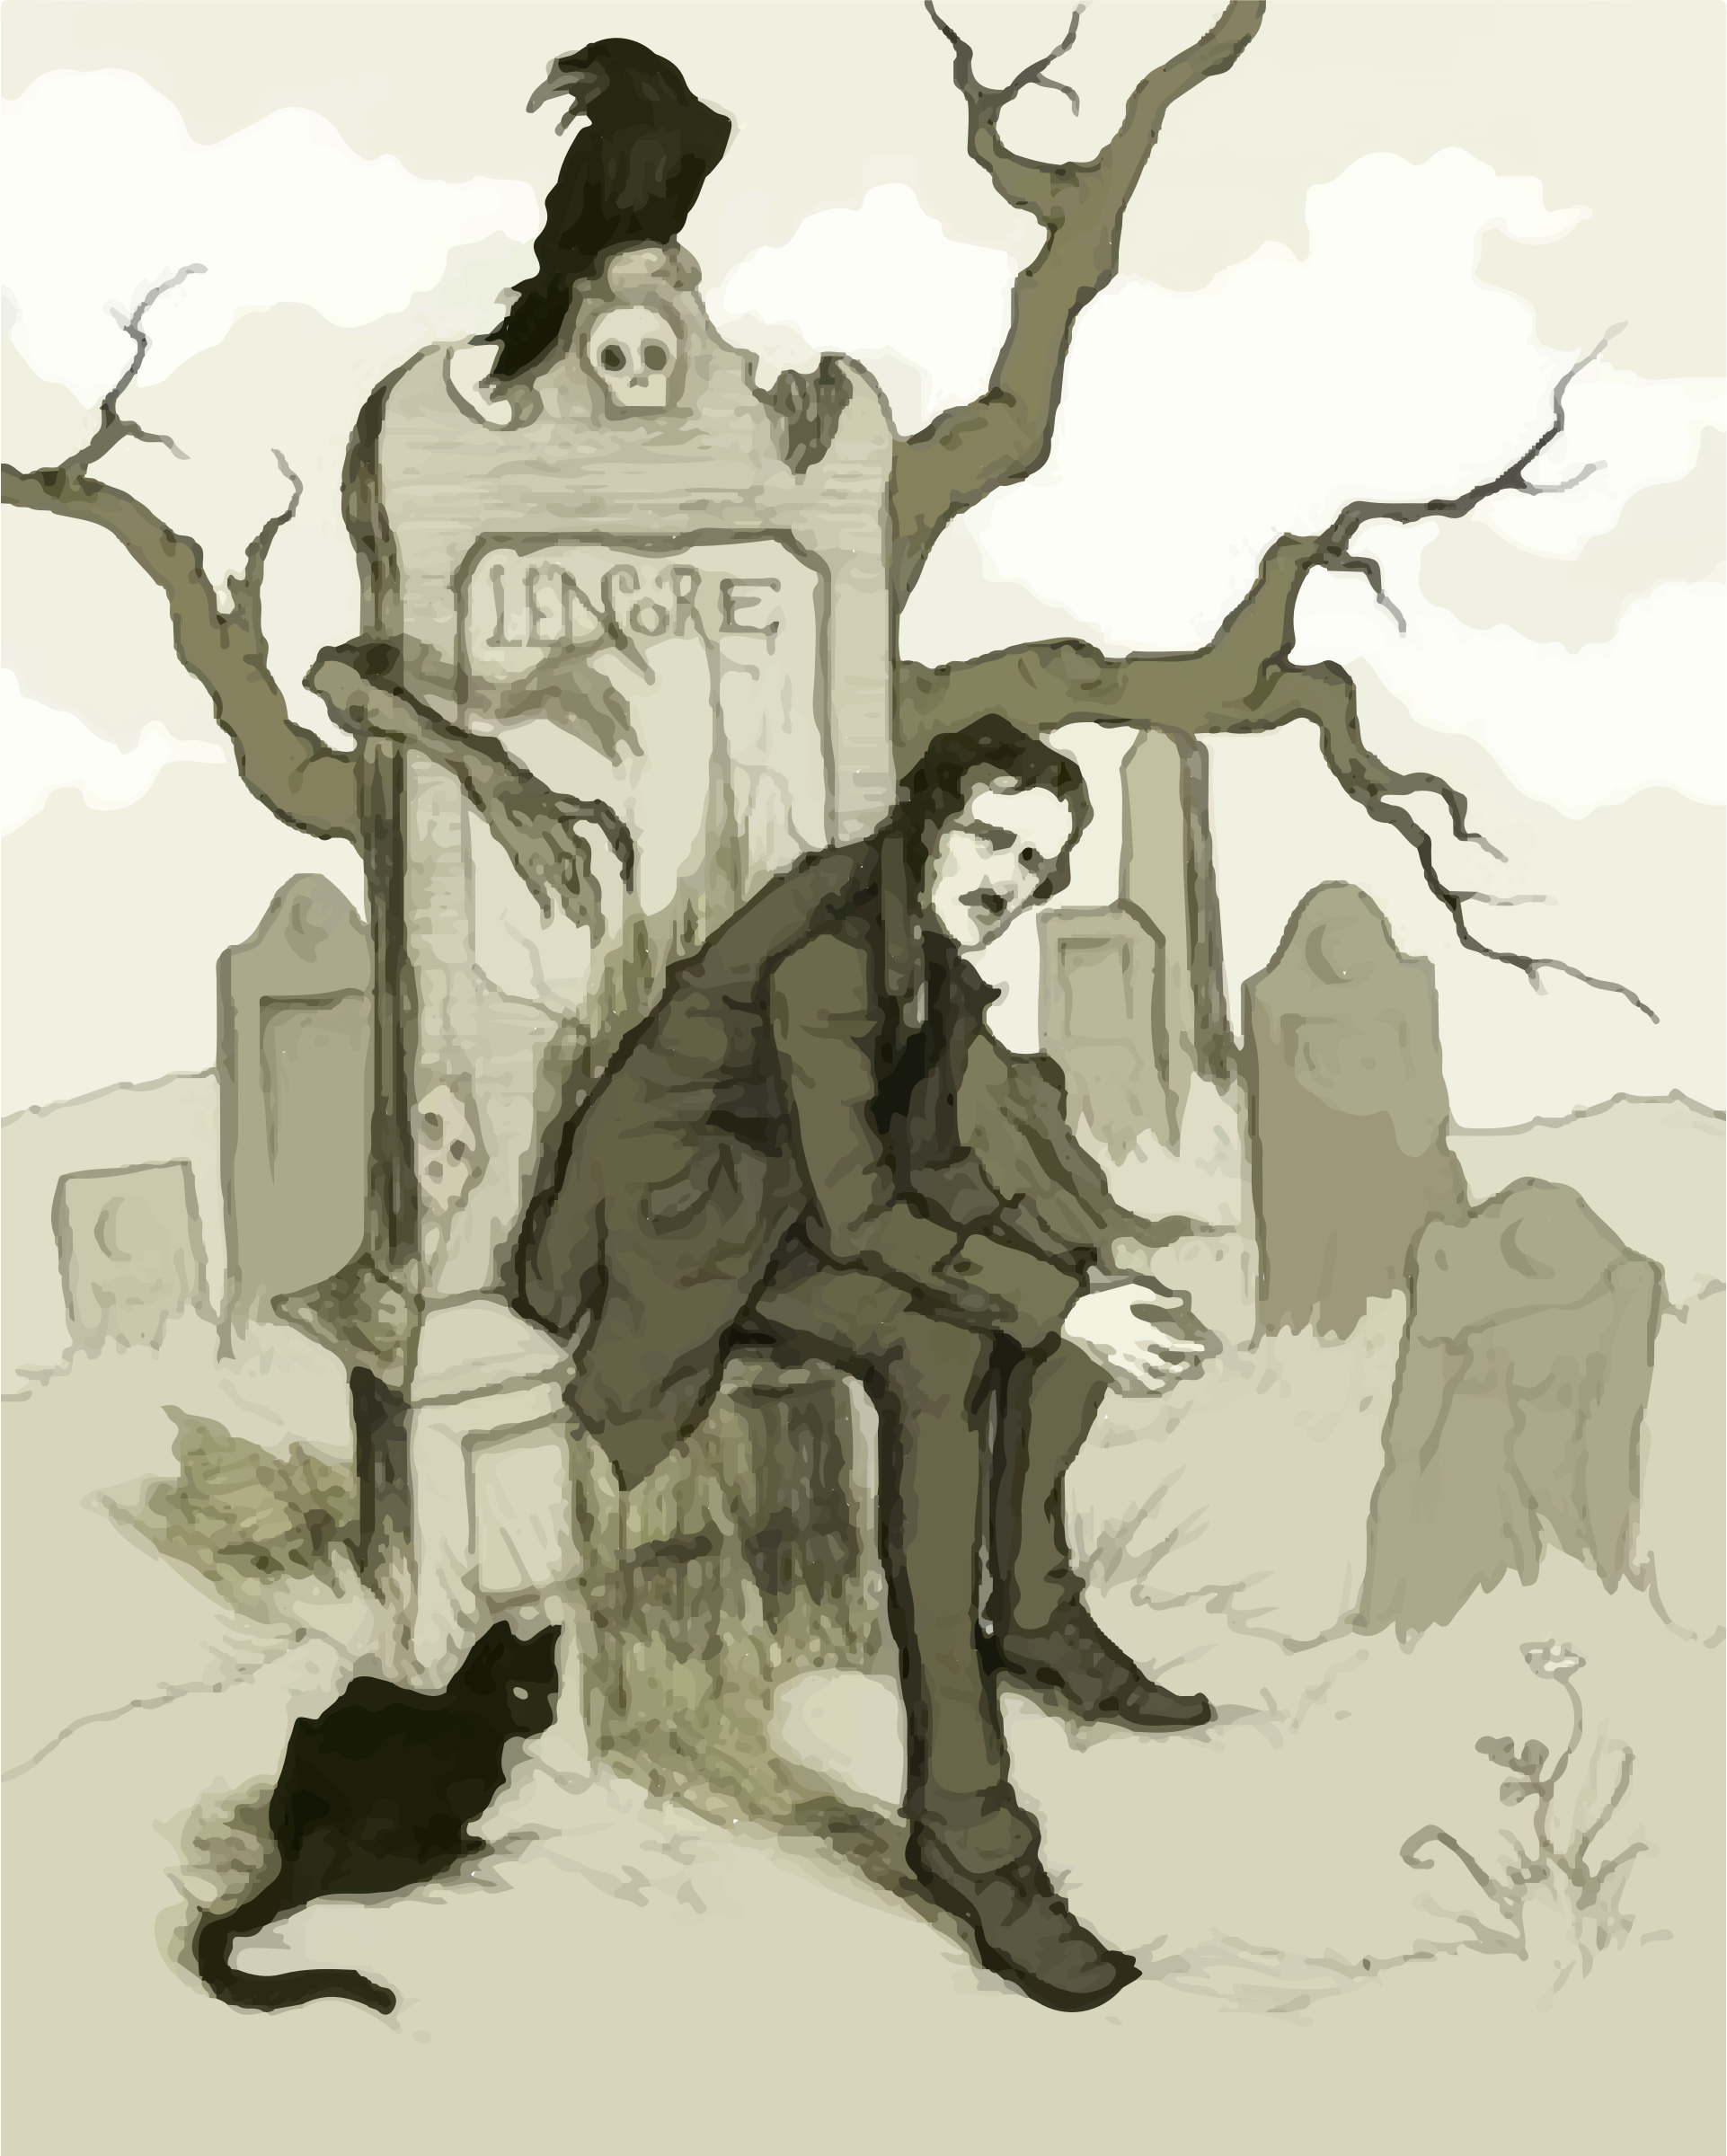 Edgar Allan Poe Illustration by GDJ